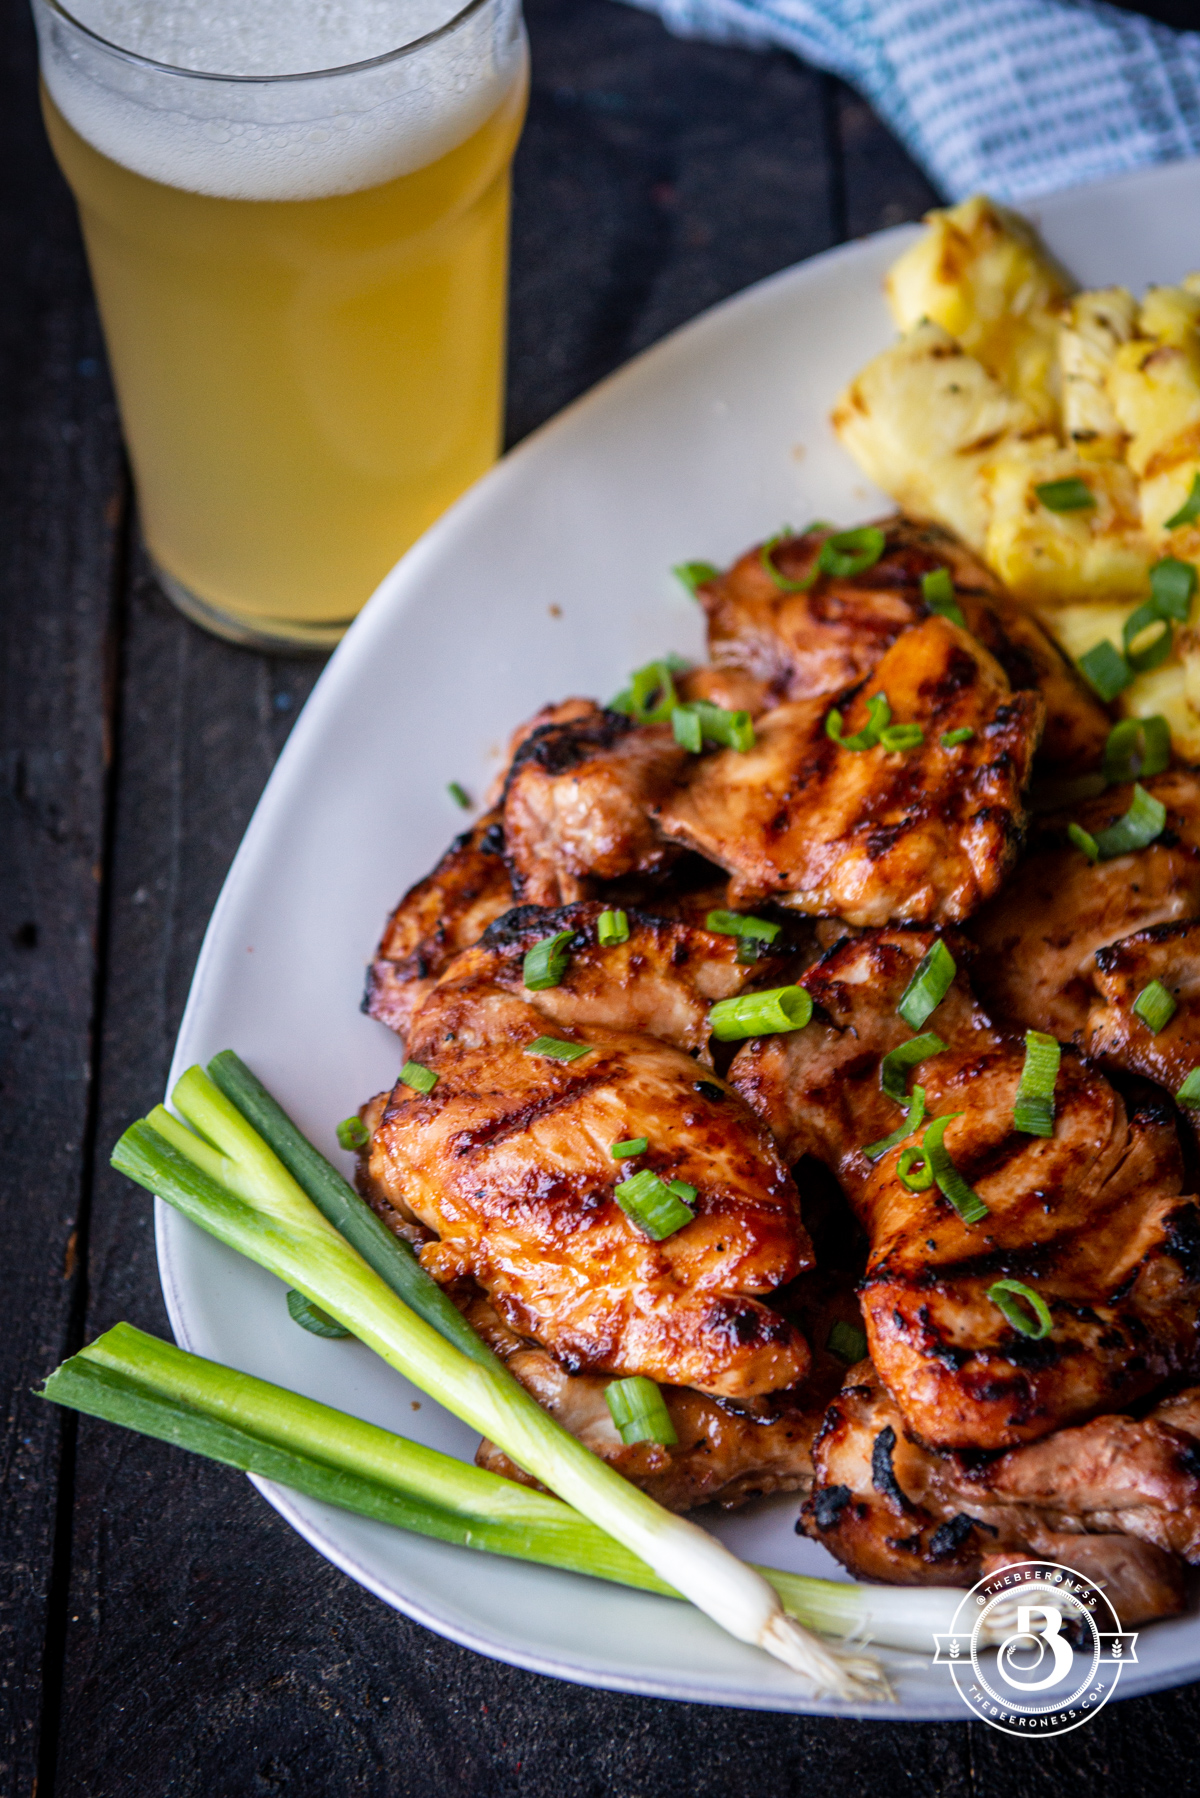 One of The Beeroness' dinner recipes